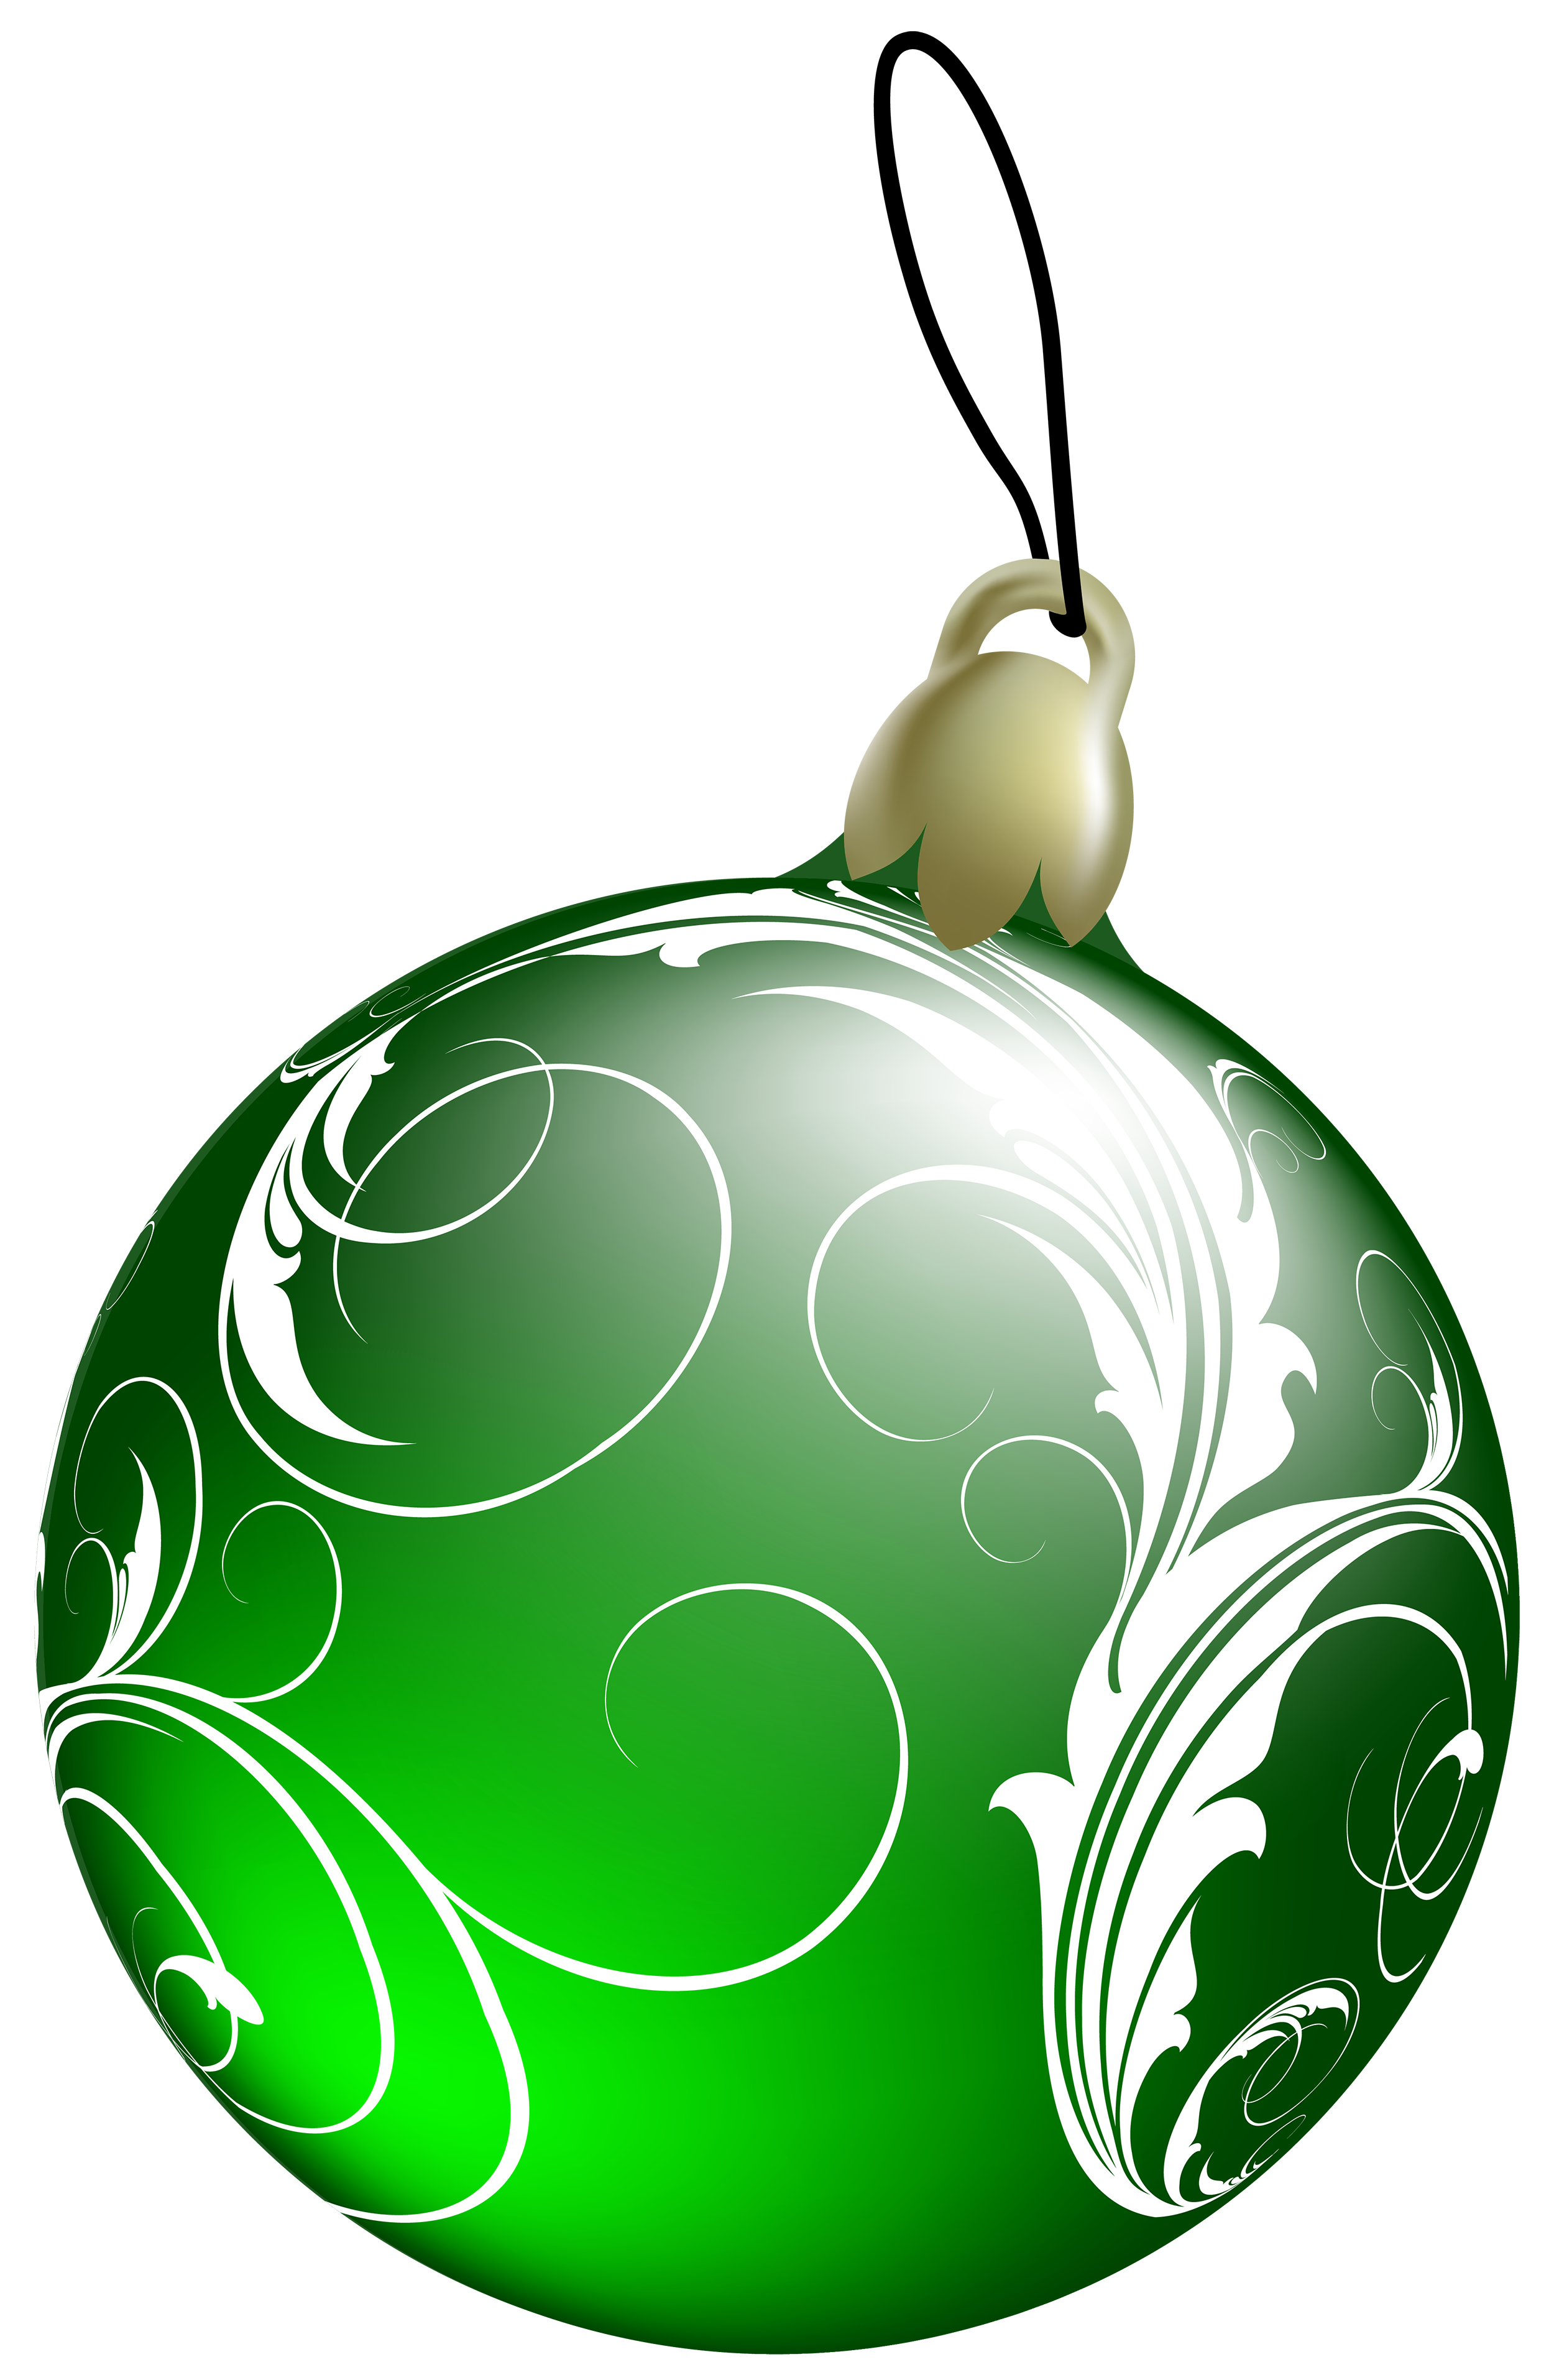 Clipart earth beautiful. Green christmas ball png